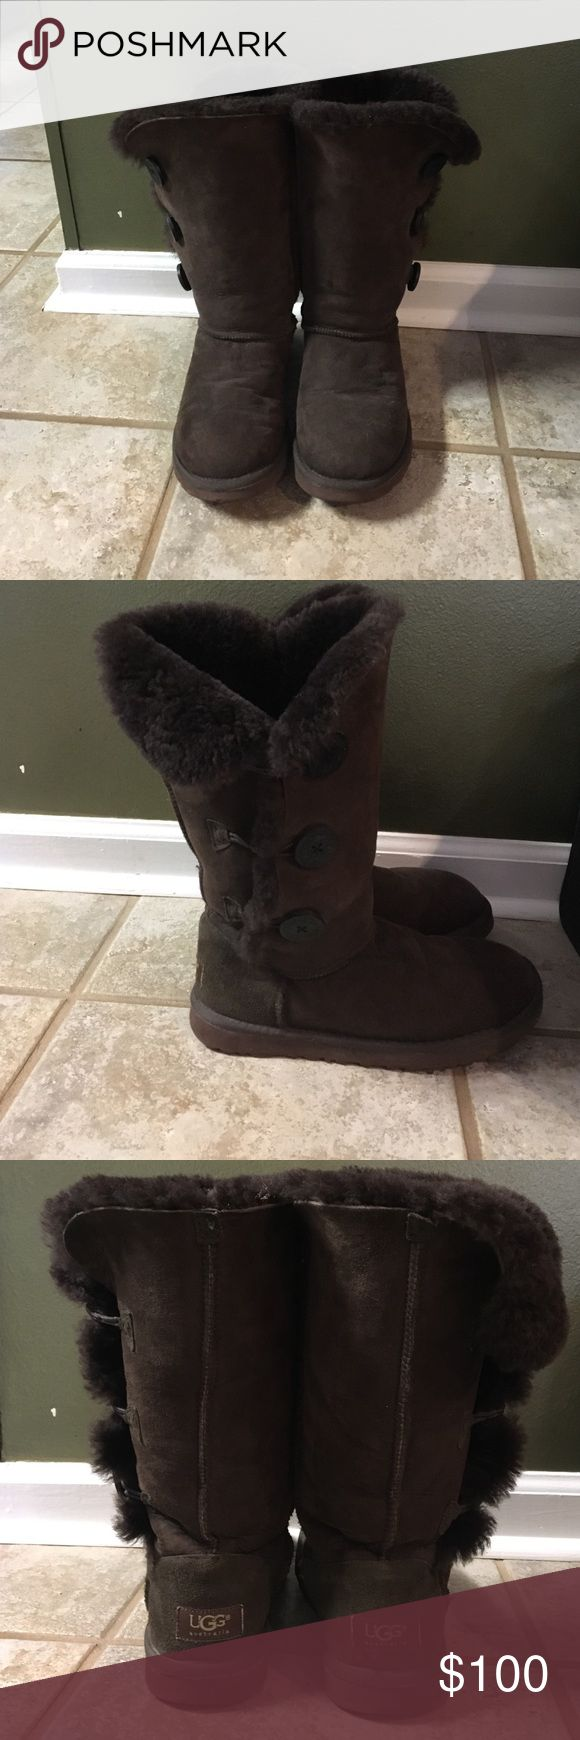 UGG Bailey Button Triplet 2 Great condition, barely worn! UGG Shoes Winter & Rain Boots